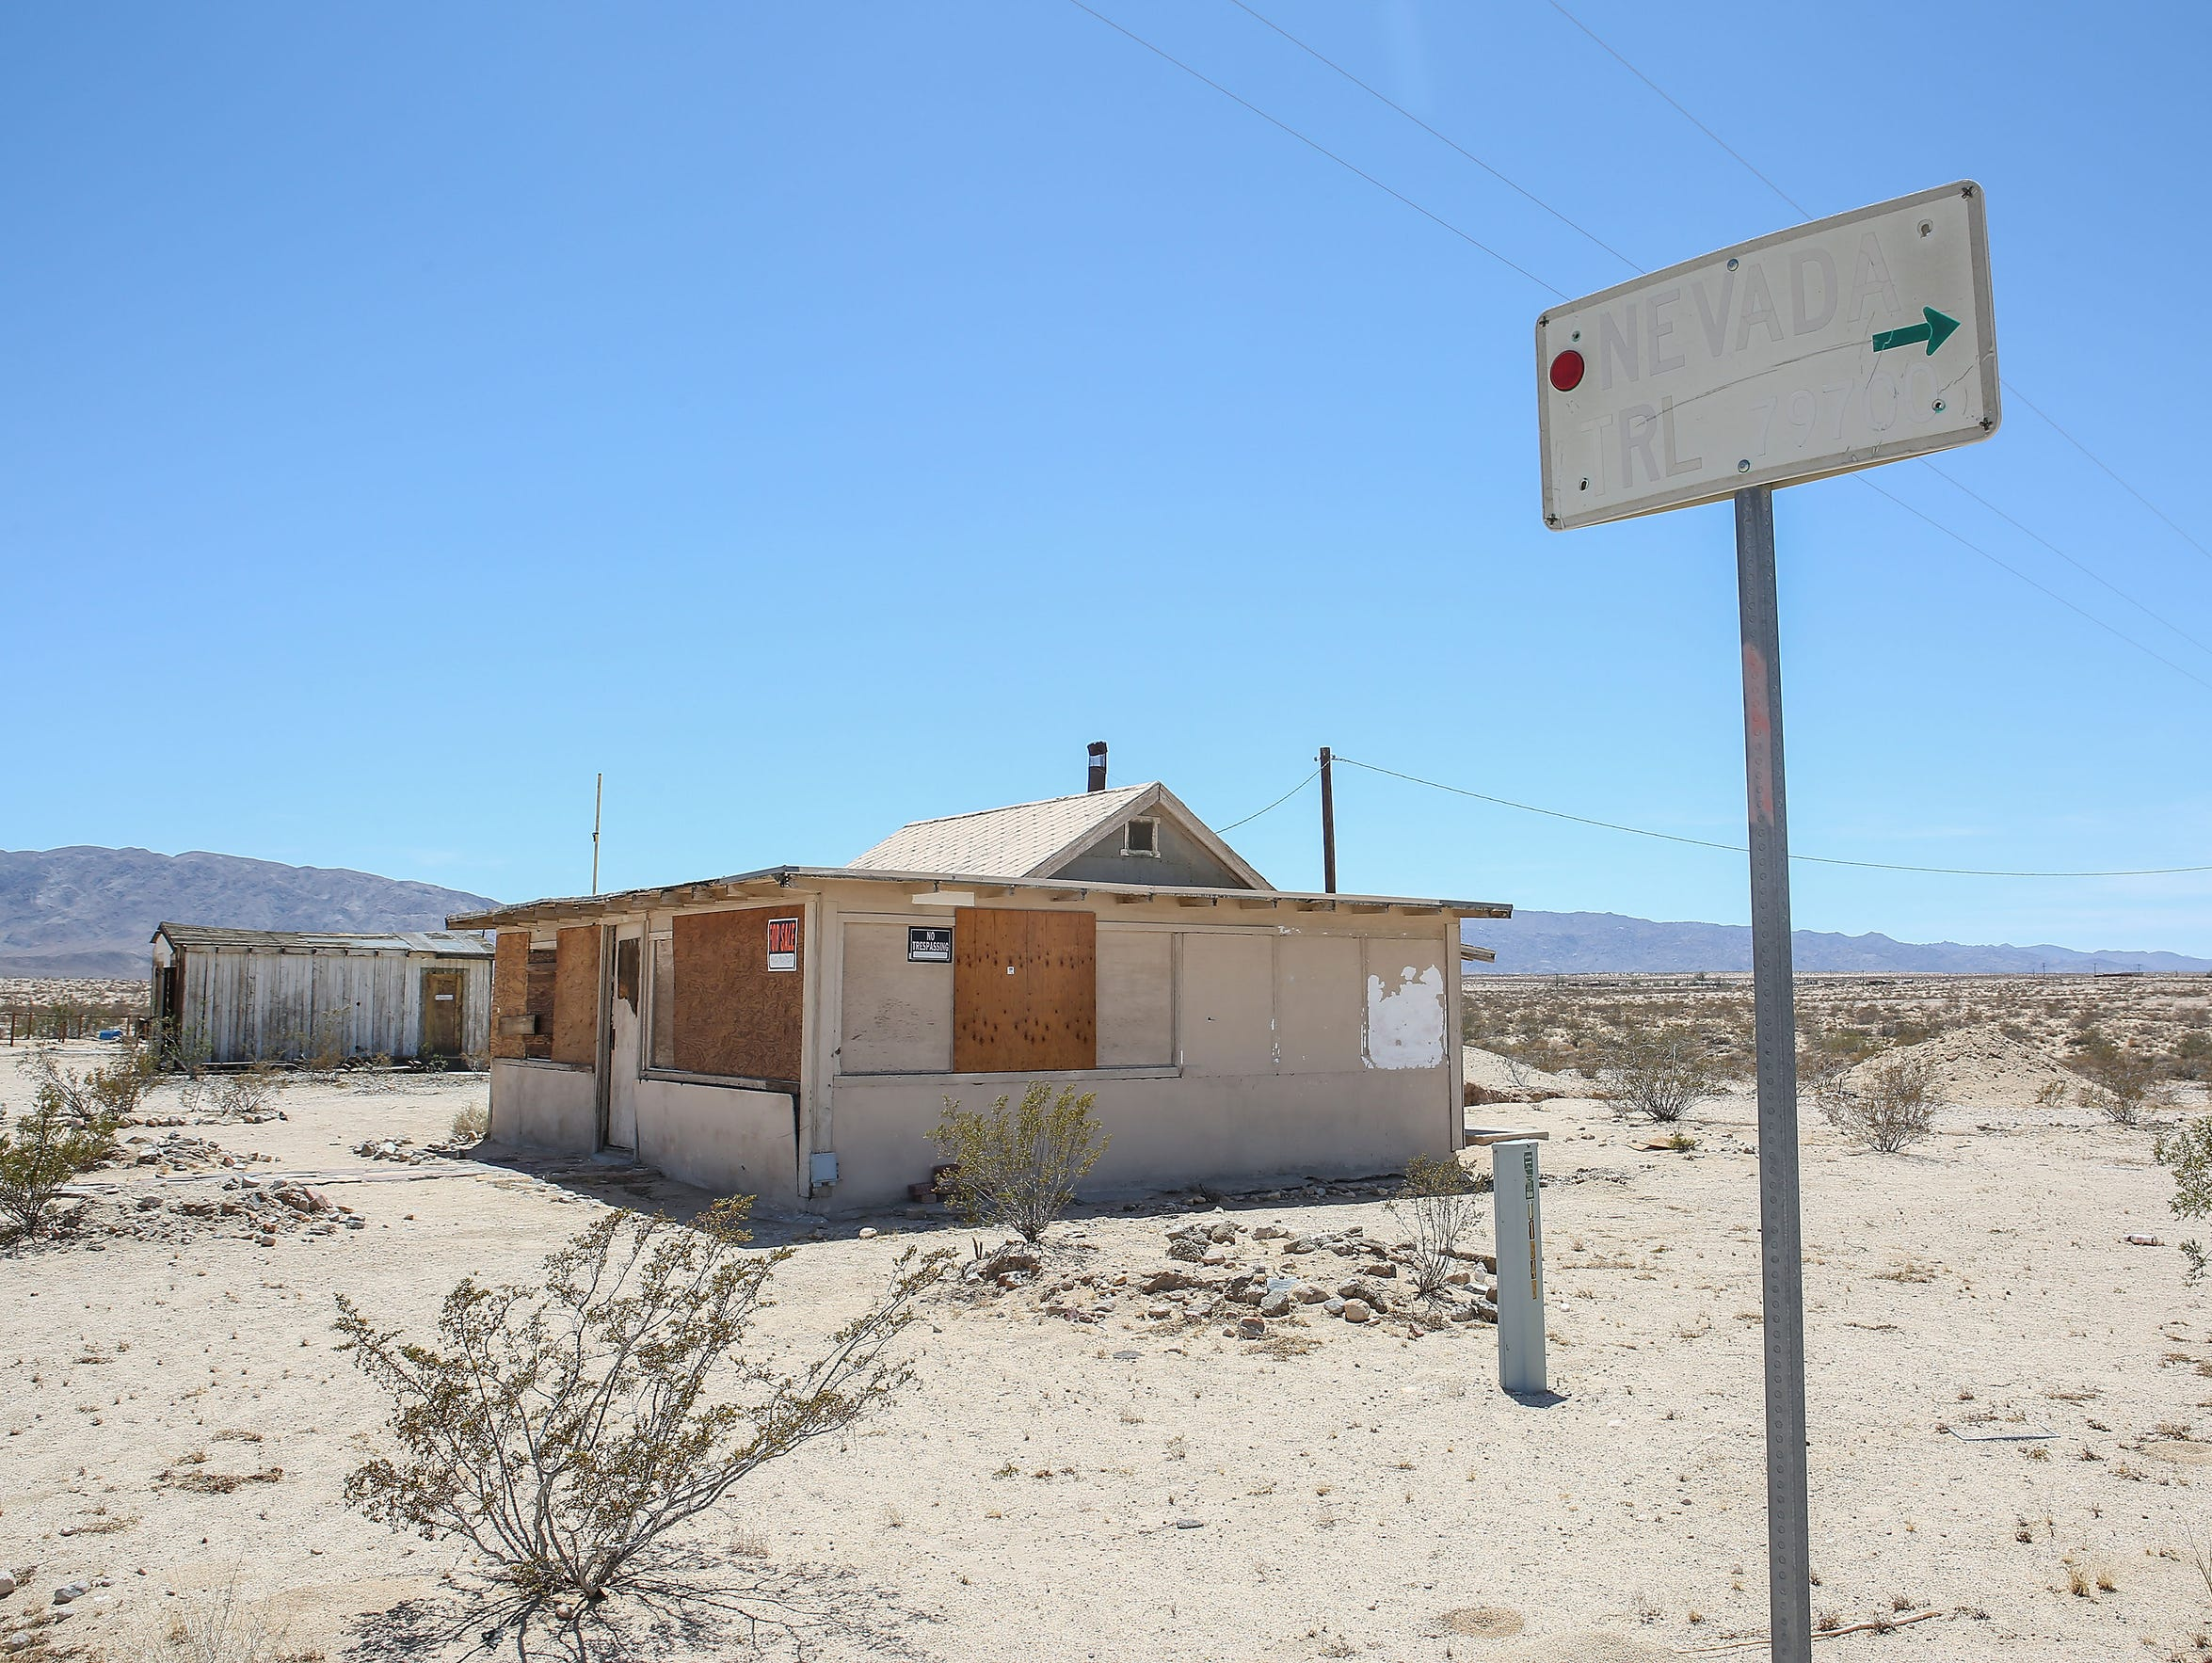 An old property is for sale in Wonder Valley.